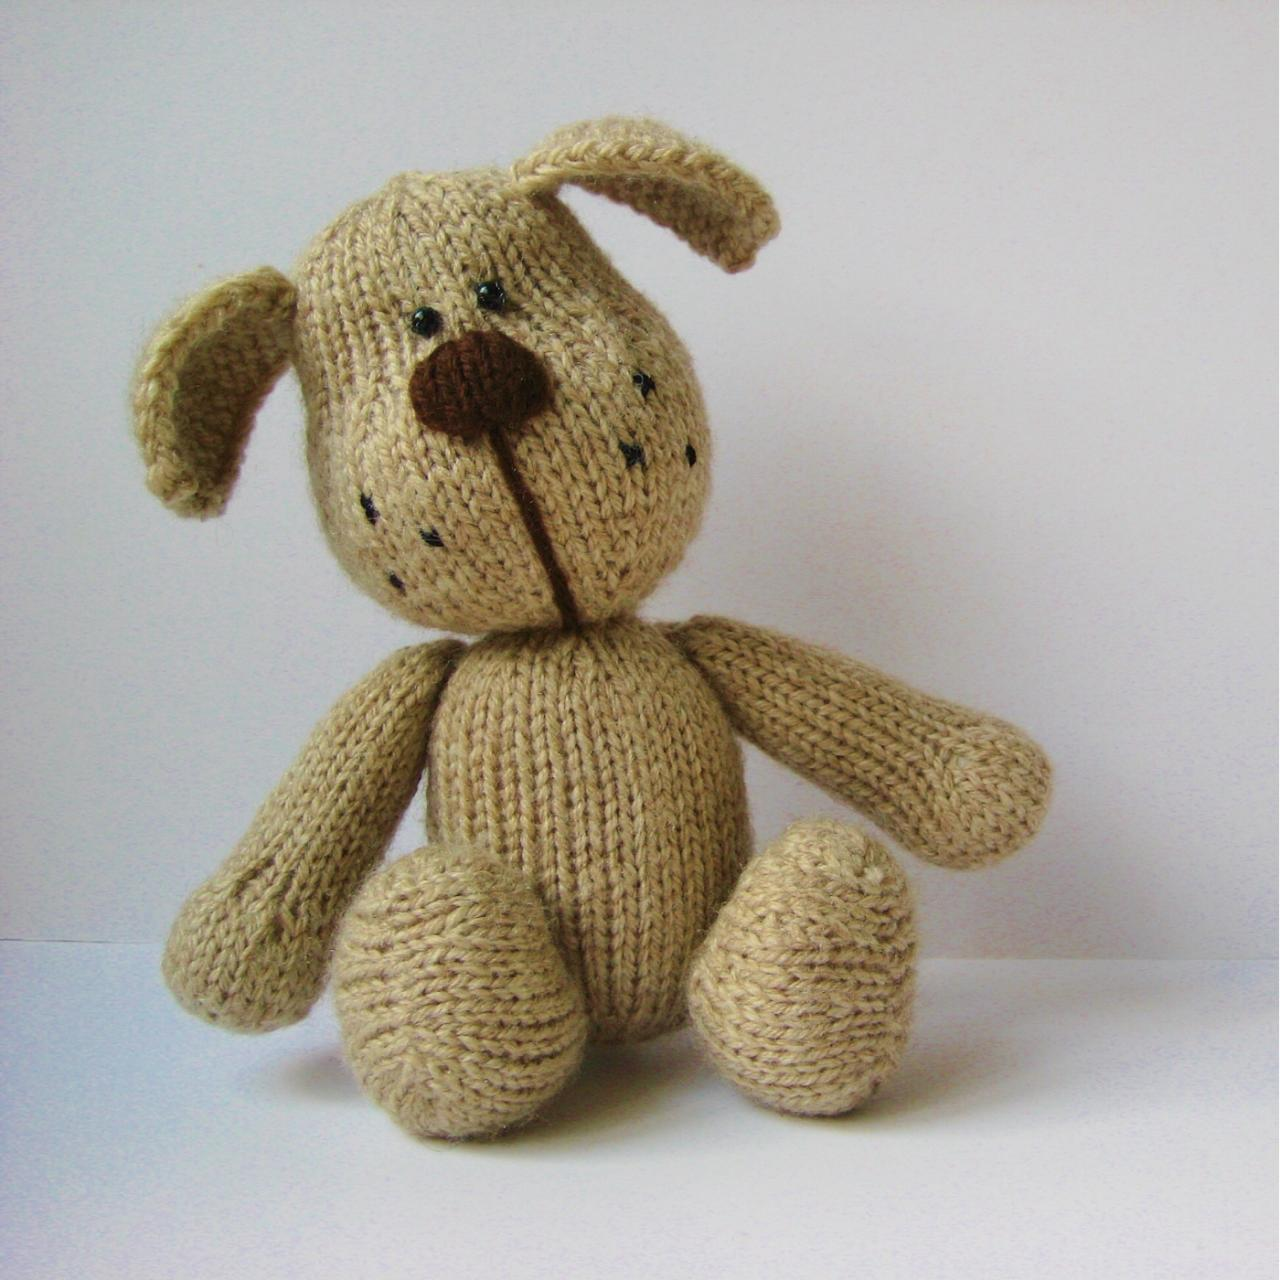 Free Knitted Dog Patterns : Free Crochet Pattern For Dog Toy Crochet And Knitting Patterns Dog Breeds P...